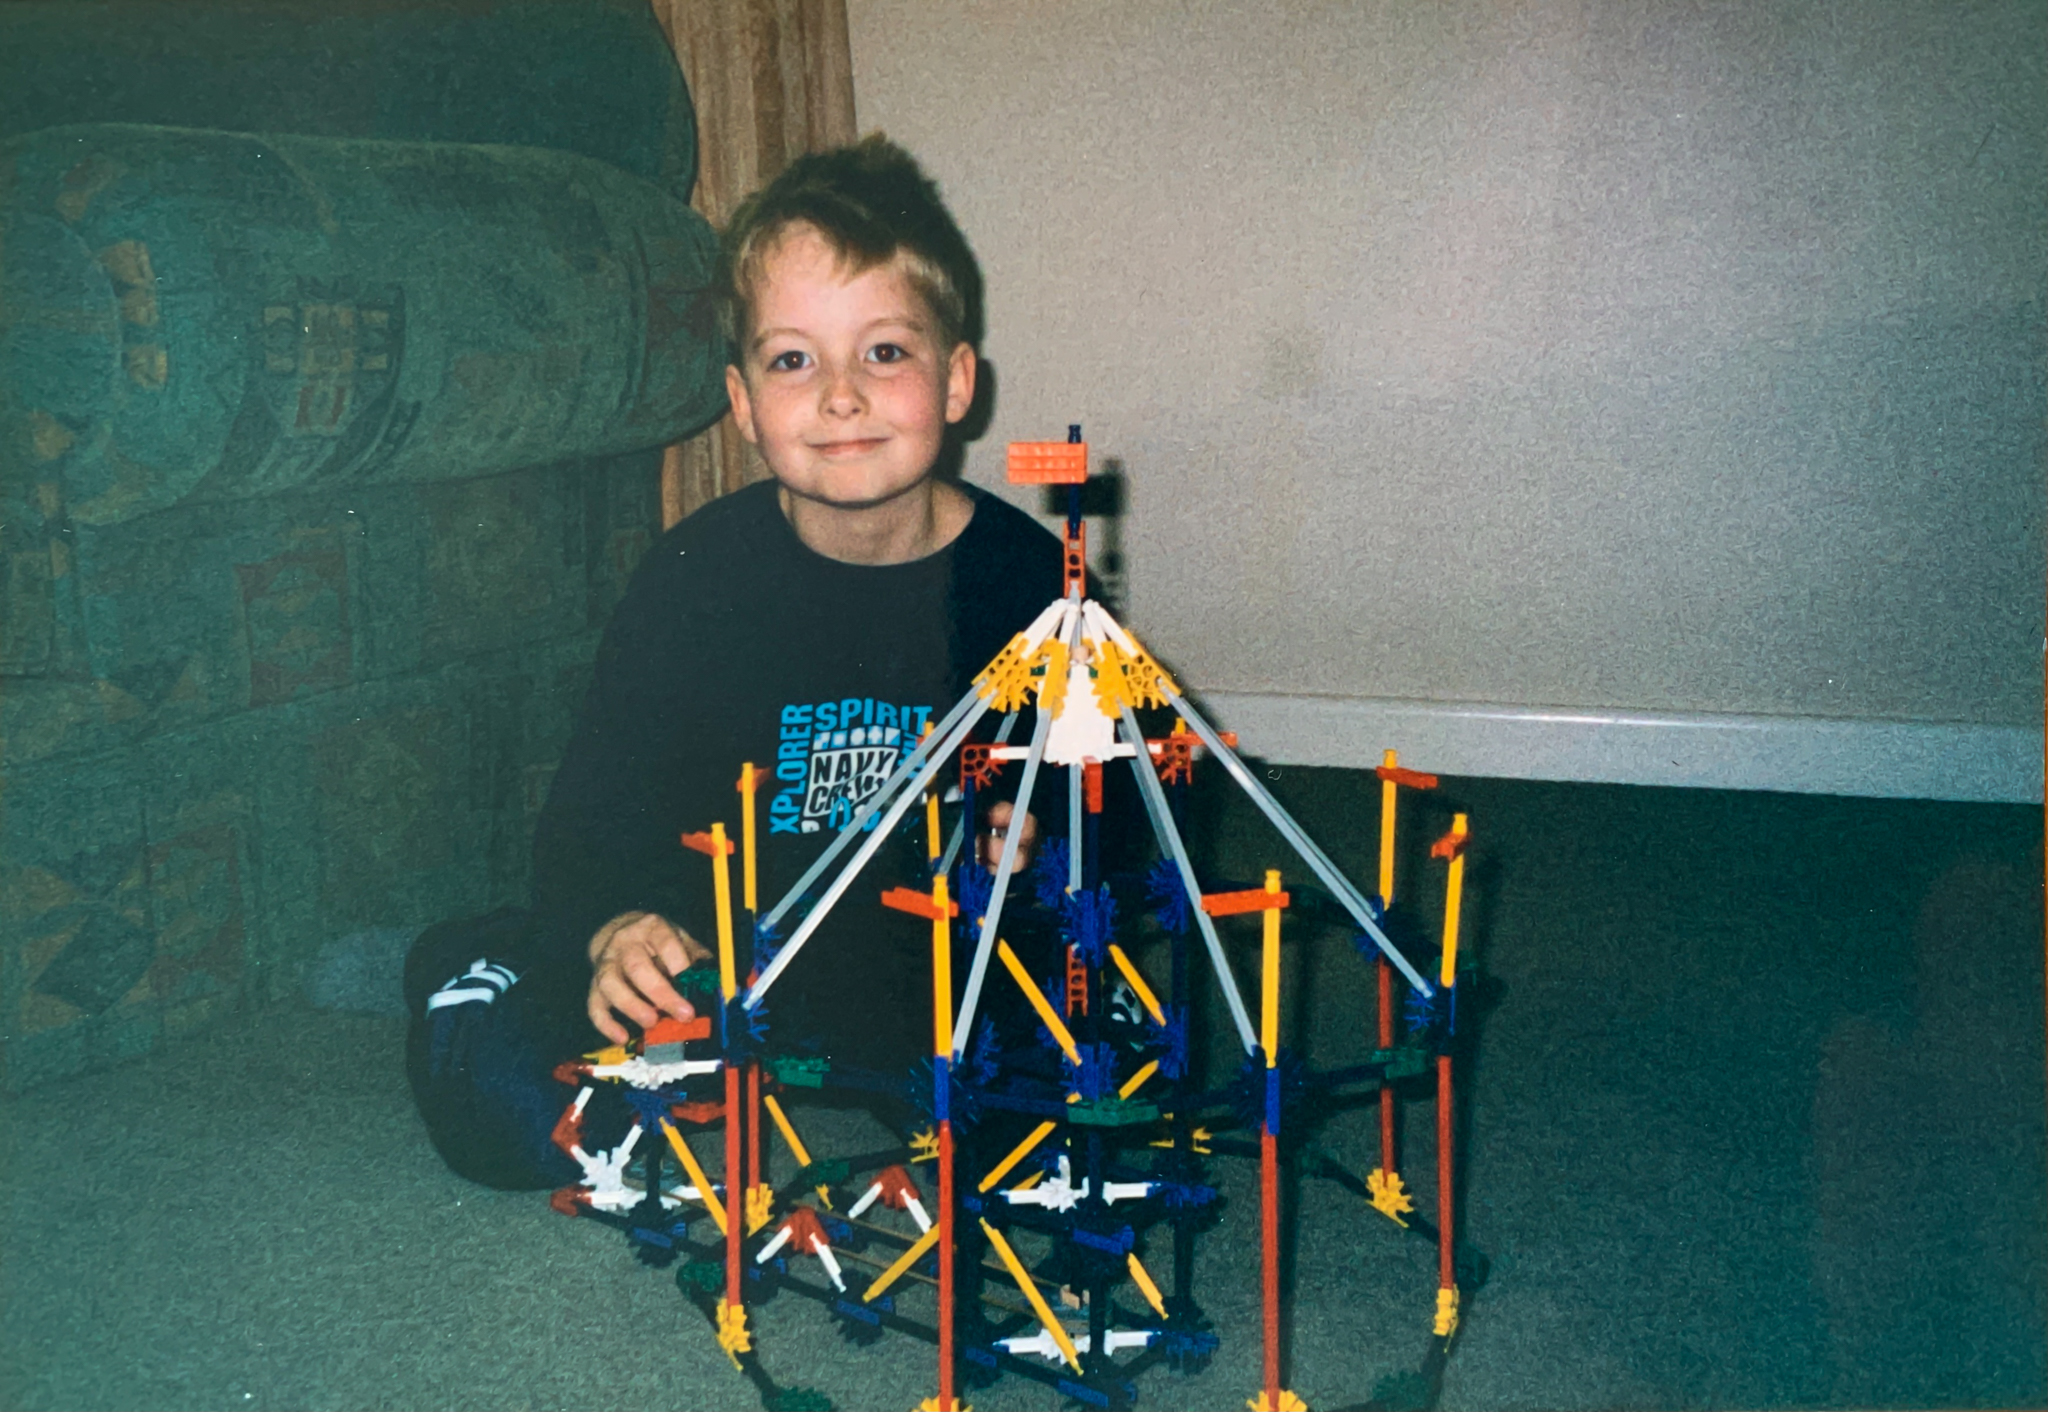 Me 6, showing off my first invention with K'NEX